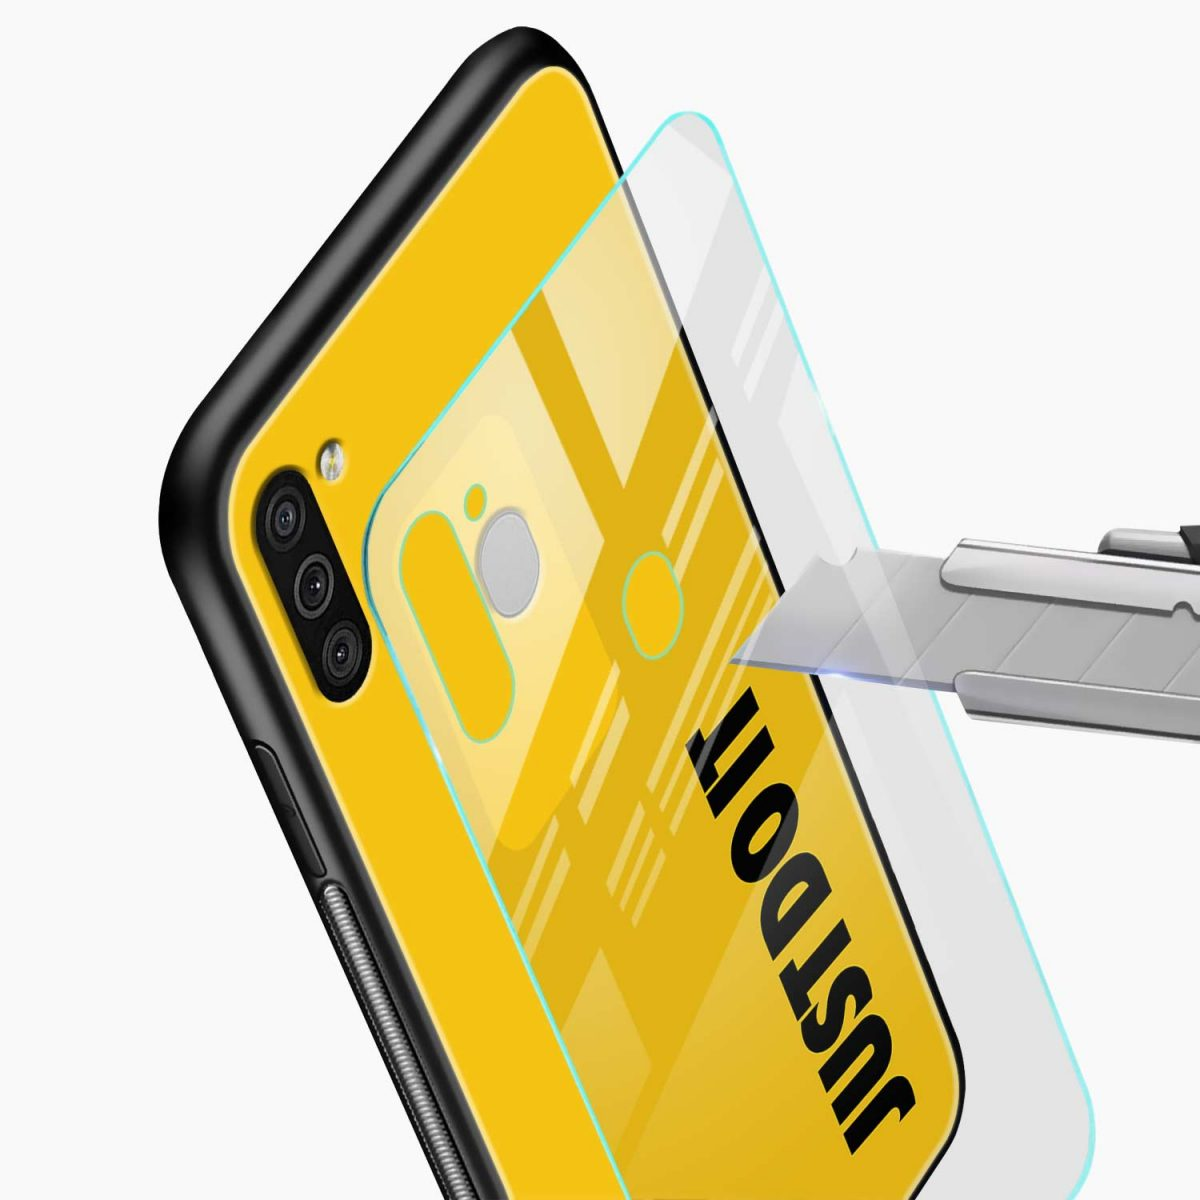 just do it glass view samsung galaxy m11 back cover